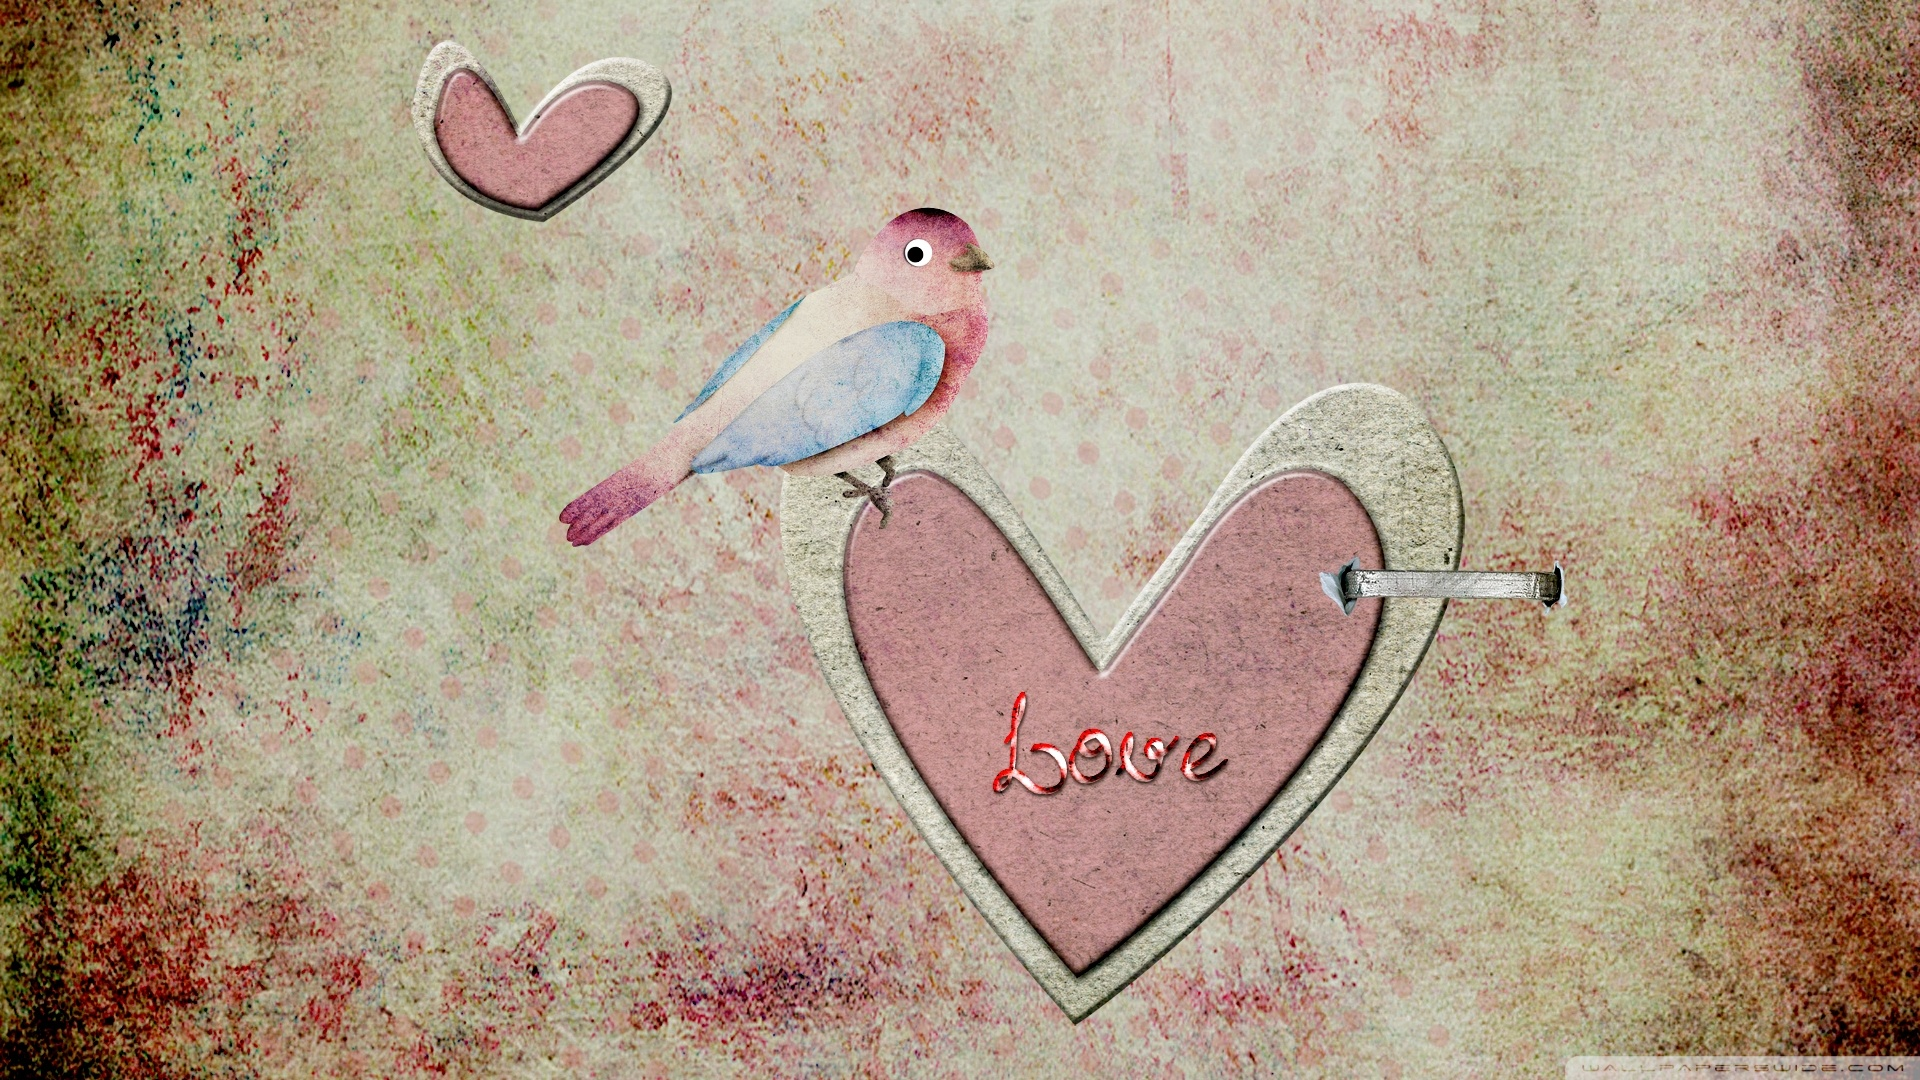 Vintage love art wallpaper 1920x1080 #28245